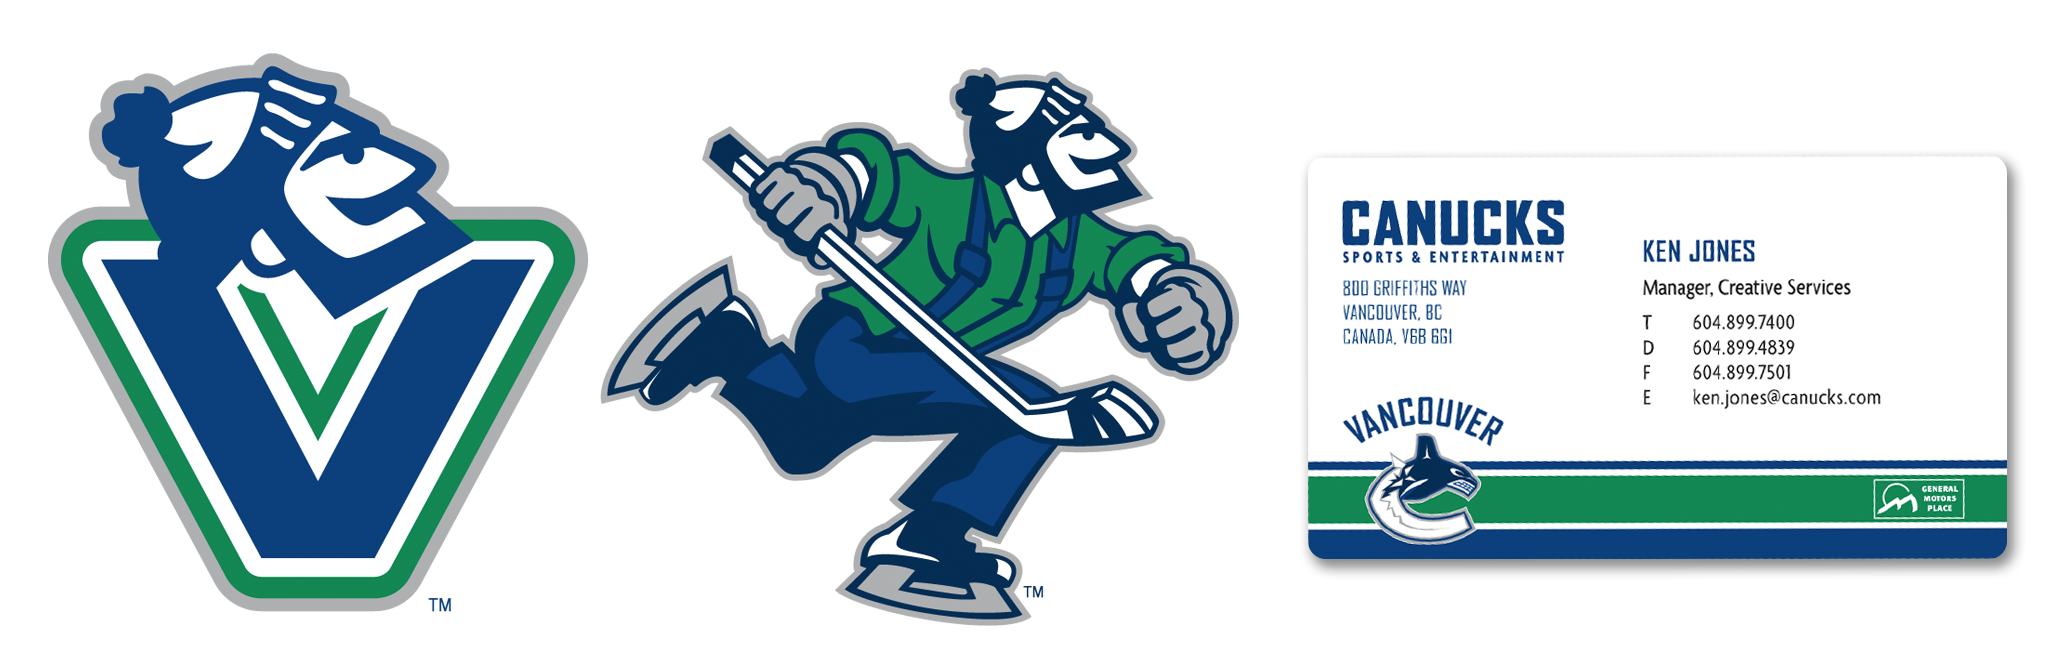 >  Here's Johnny Canuck! + CSE branded business card